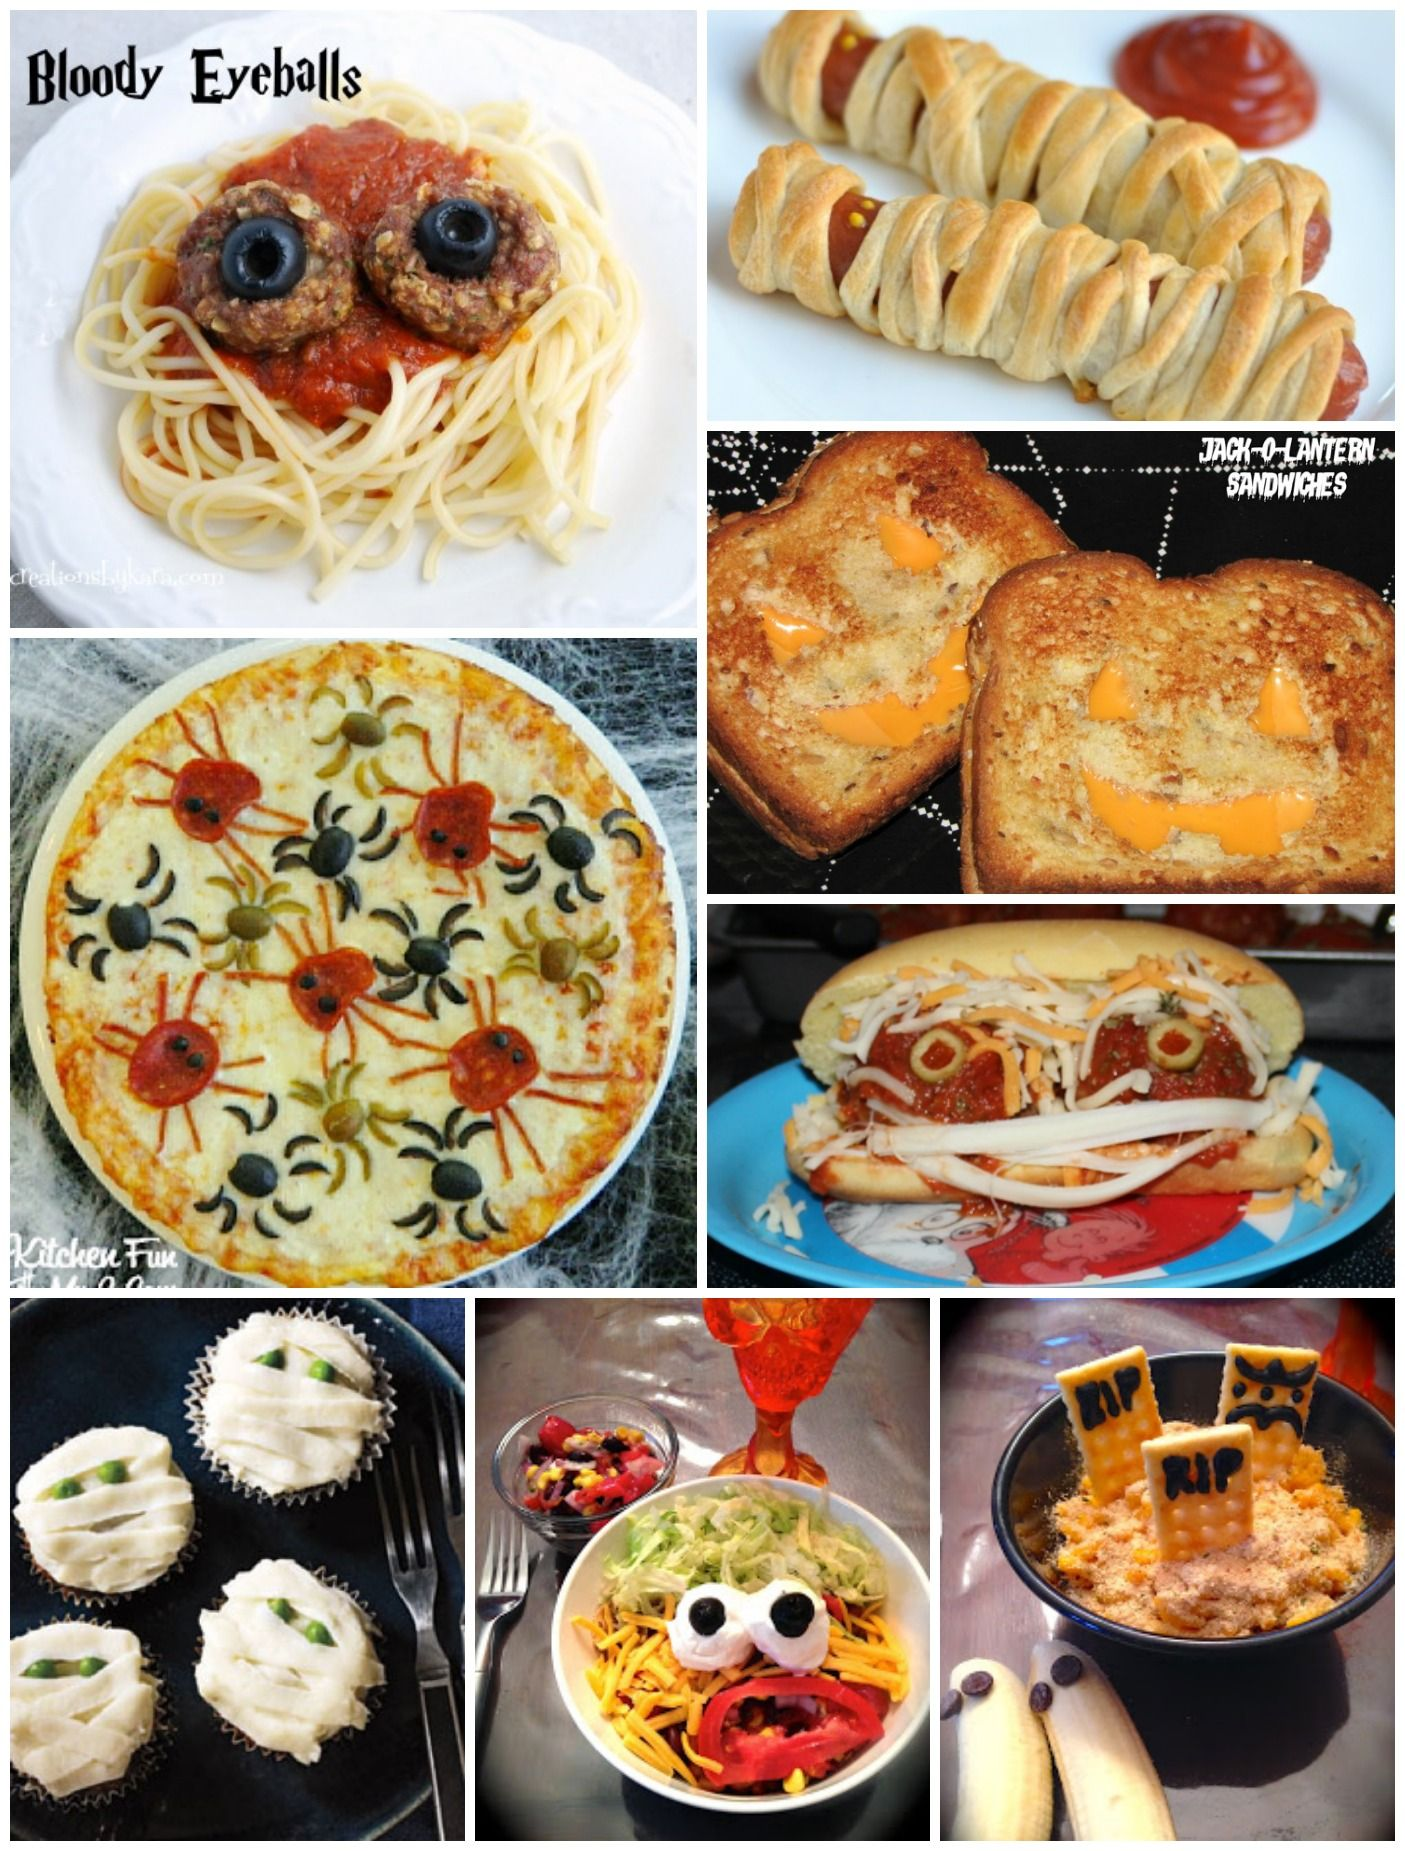 Fun Halloween Dinner Ideas from happygoluckyblog.com